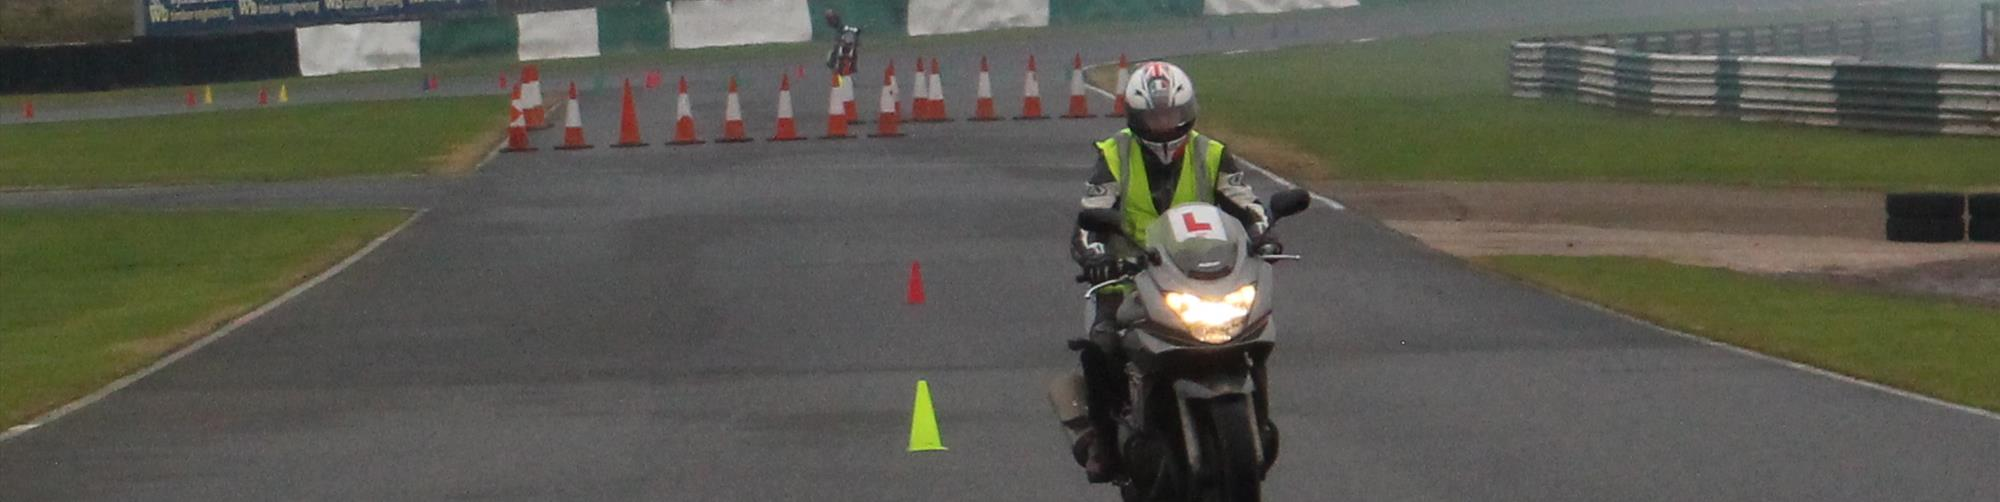 DVSA Motorcycle test